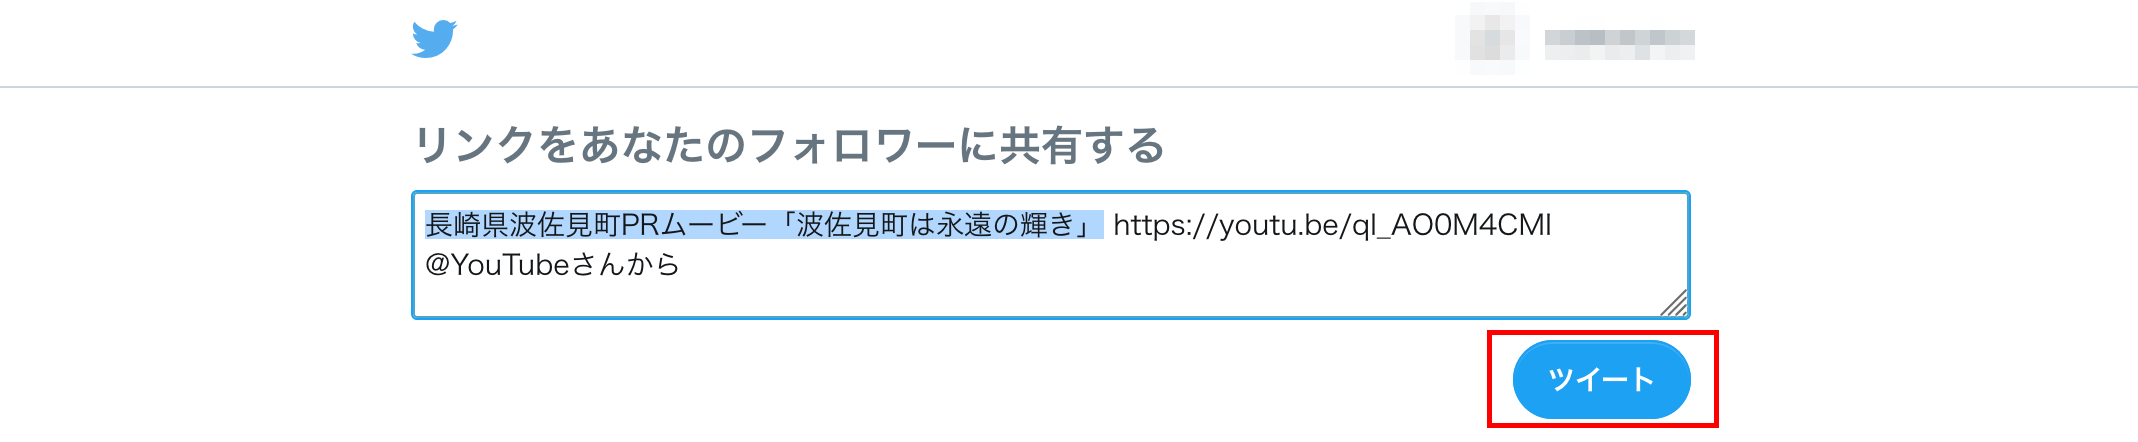 6_youtube-twitter_3.png